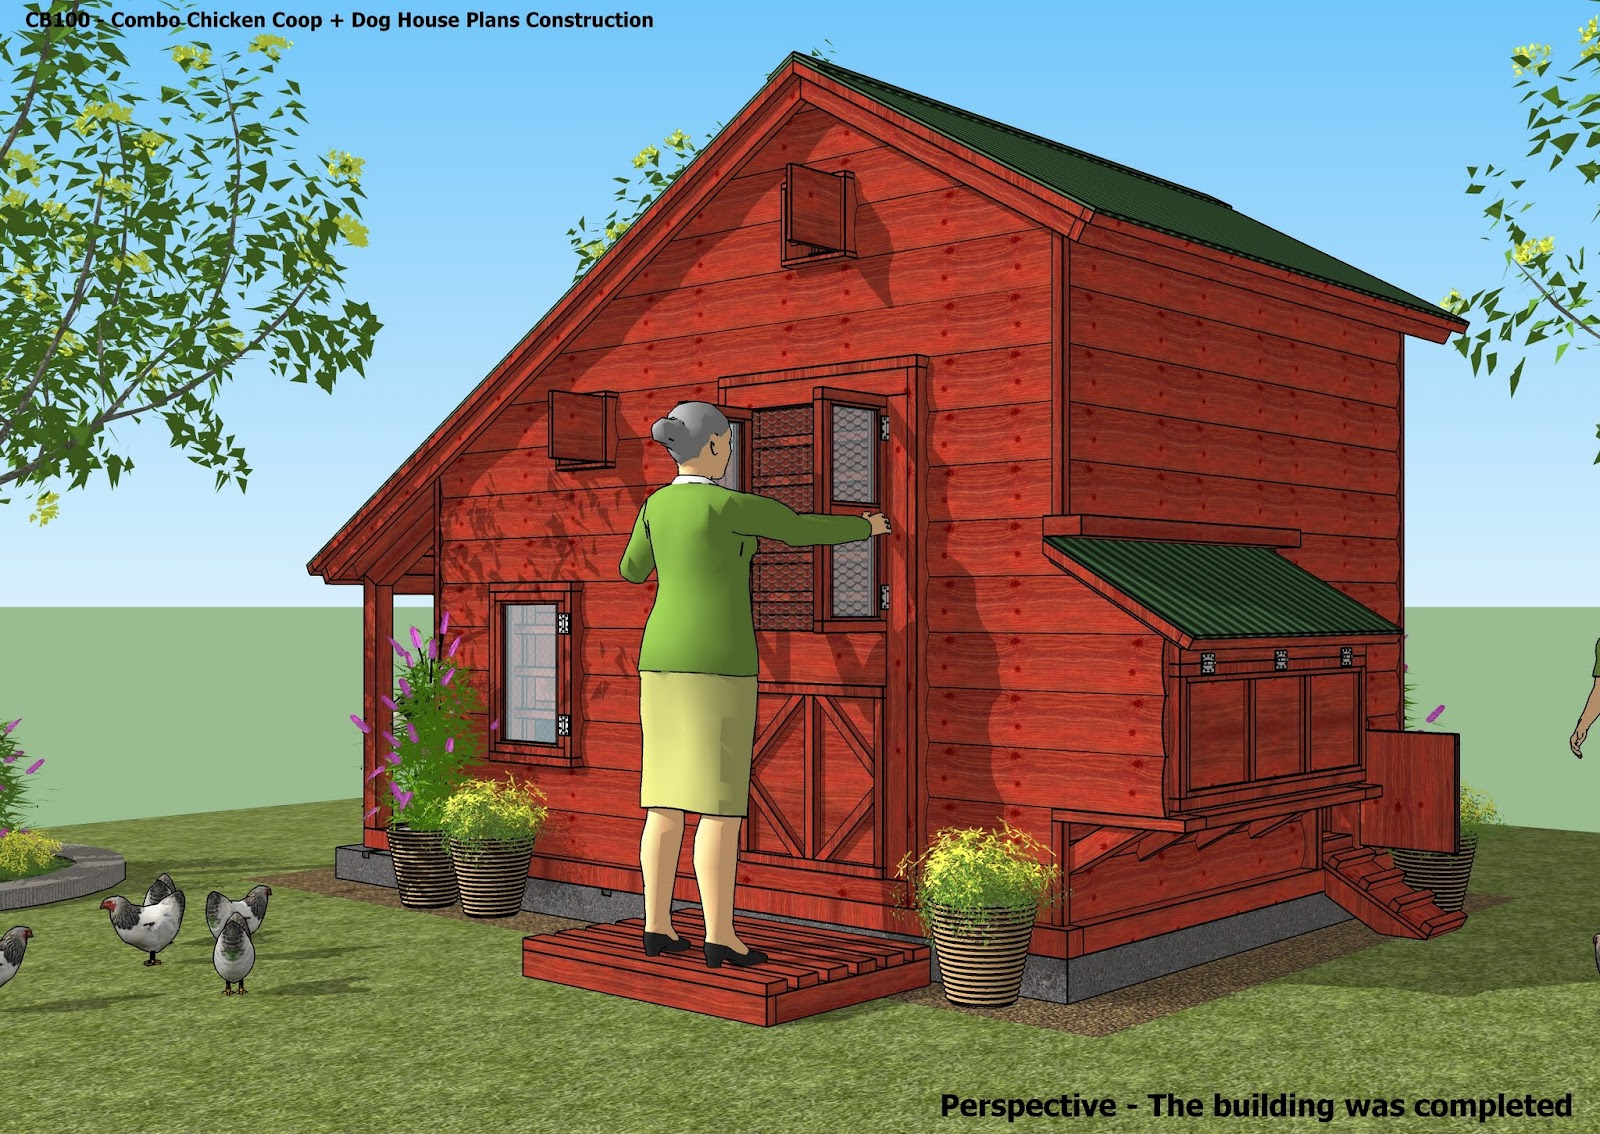 Home garden plans cb100 combo plans chicken coop for Plans for hen house